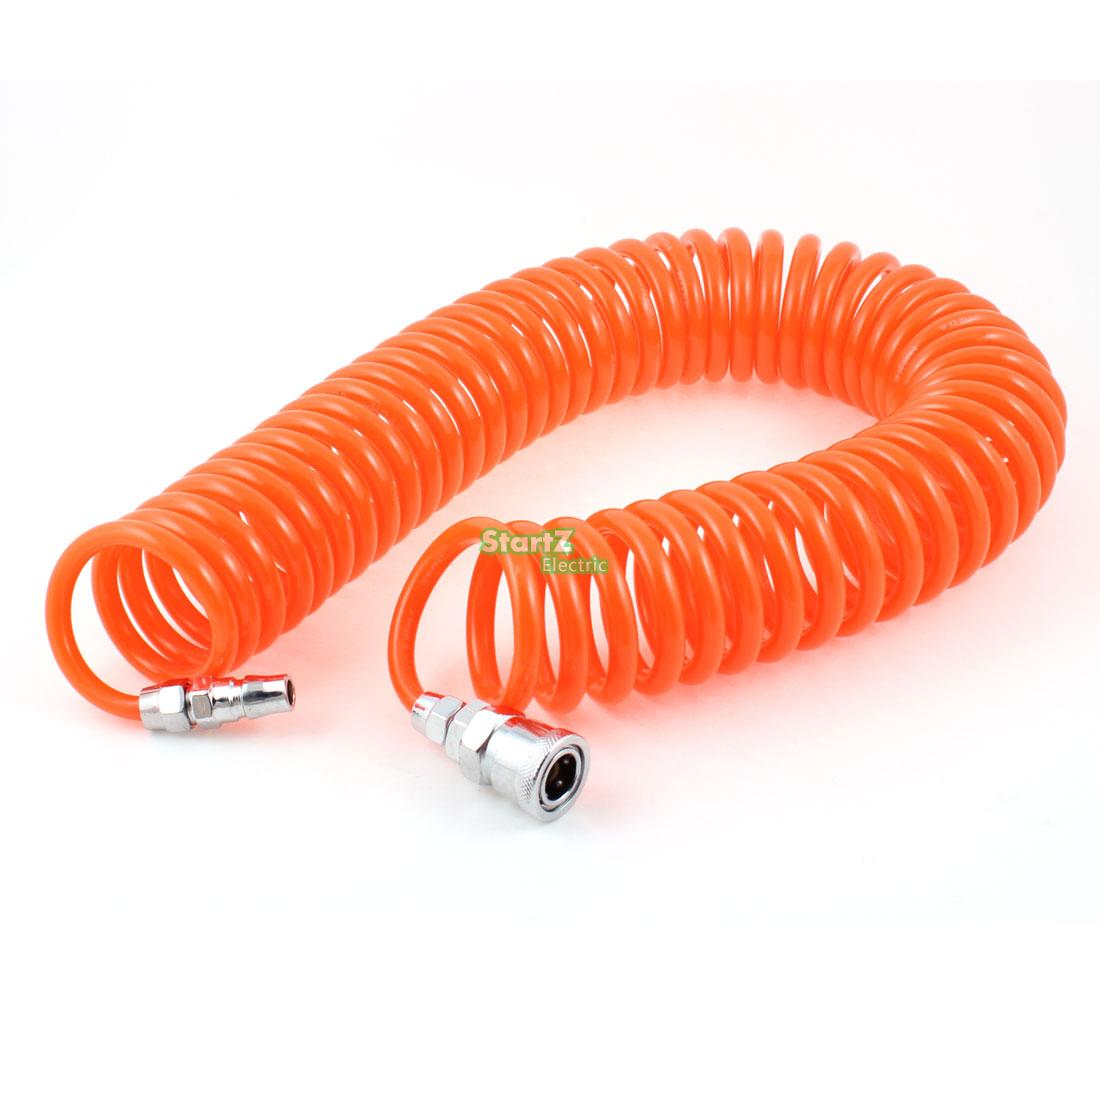 12M 39 Ft 8mm x 5mm Polyurethane PU Recoil Air Compressor Hose Tube Orange Red 12m 39 ft 8 x 5mm flexible pu recoil pipe hose for air compressor free shipping